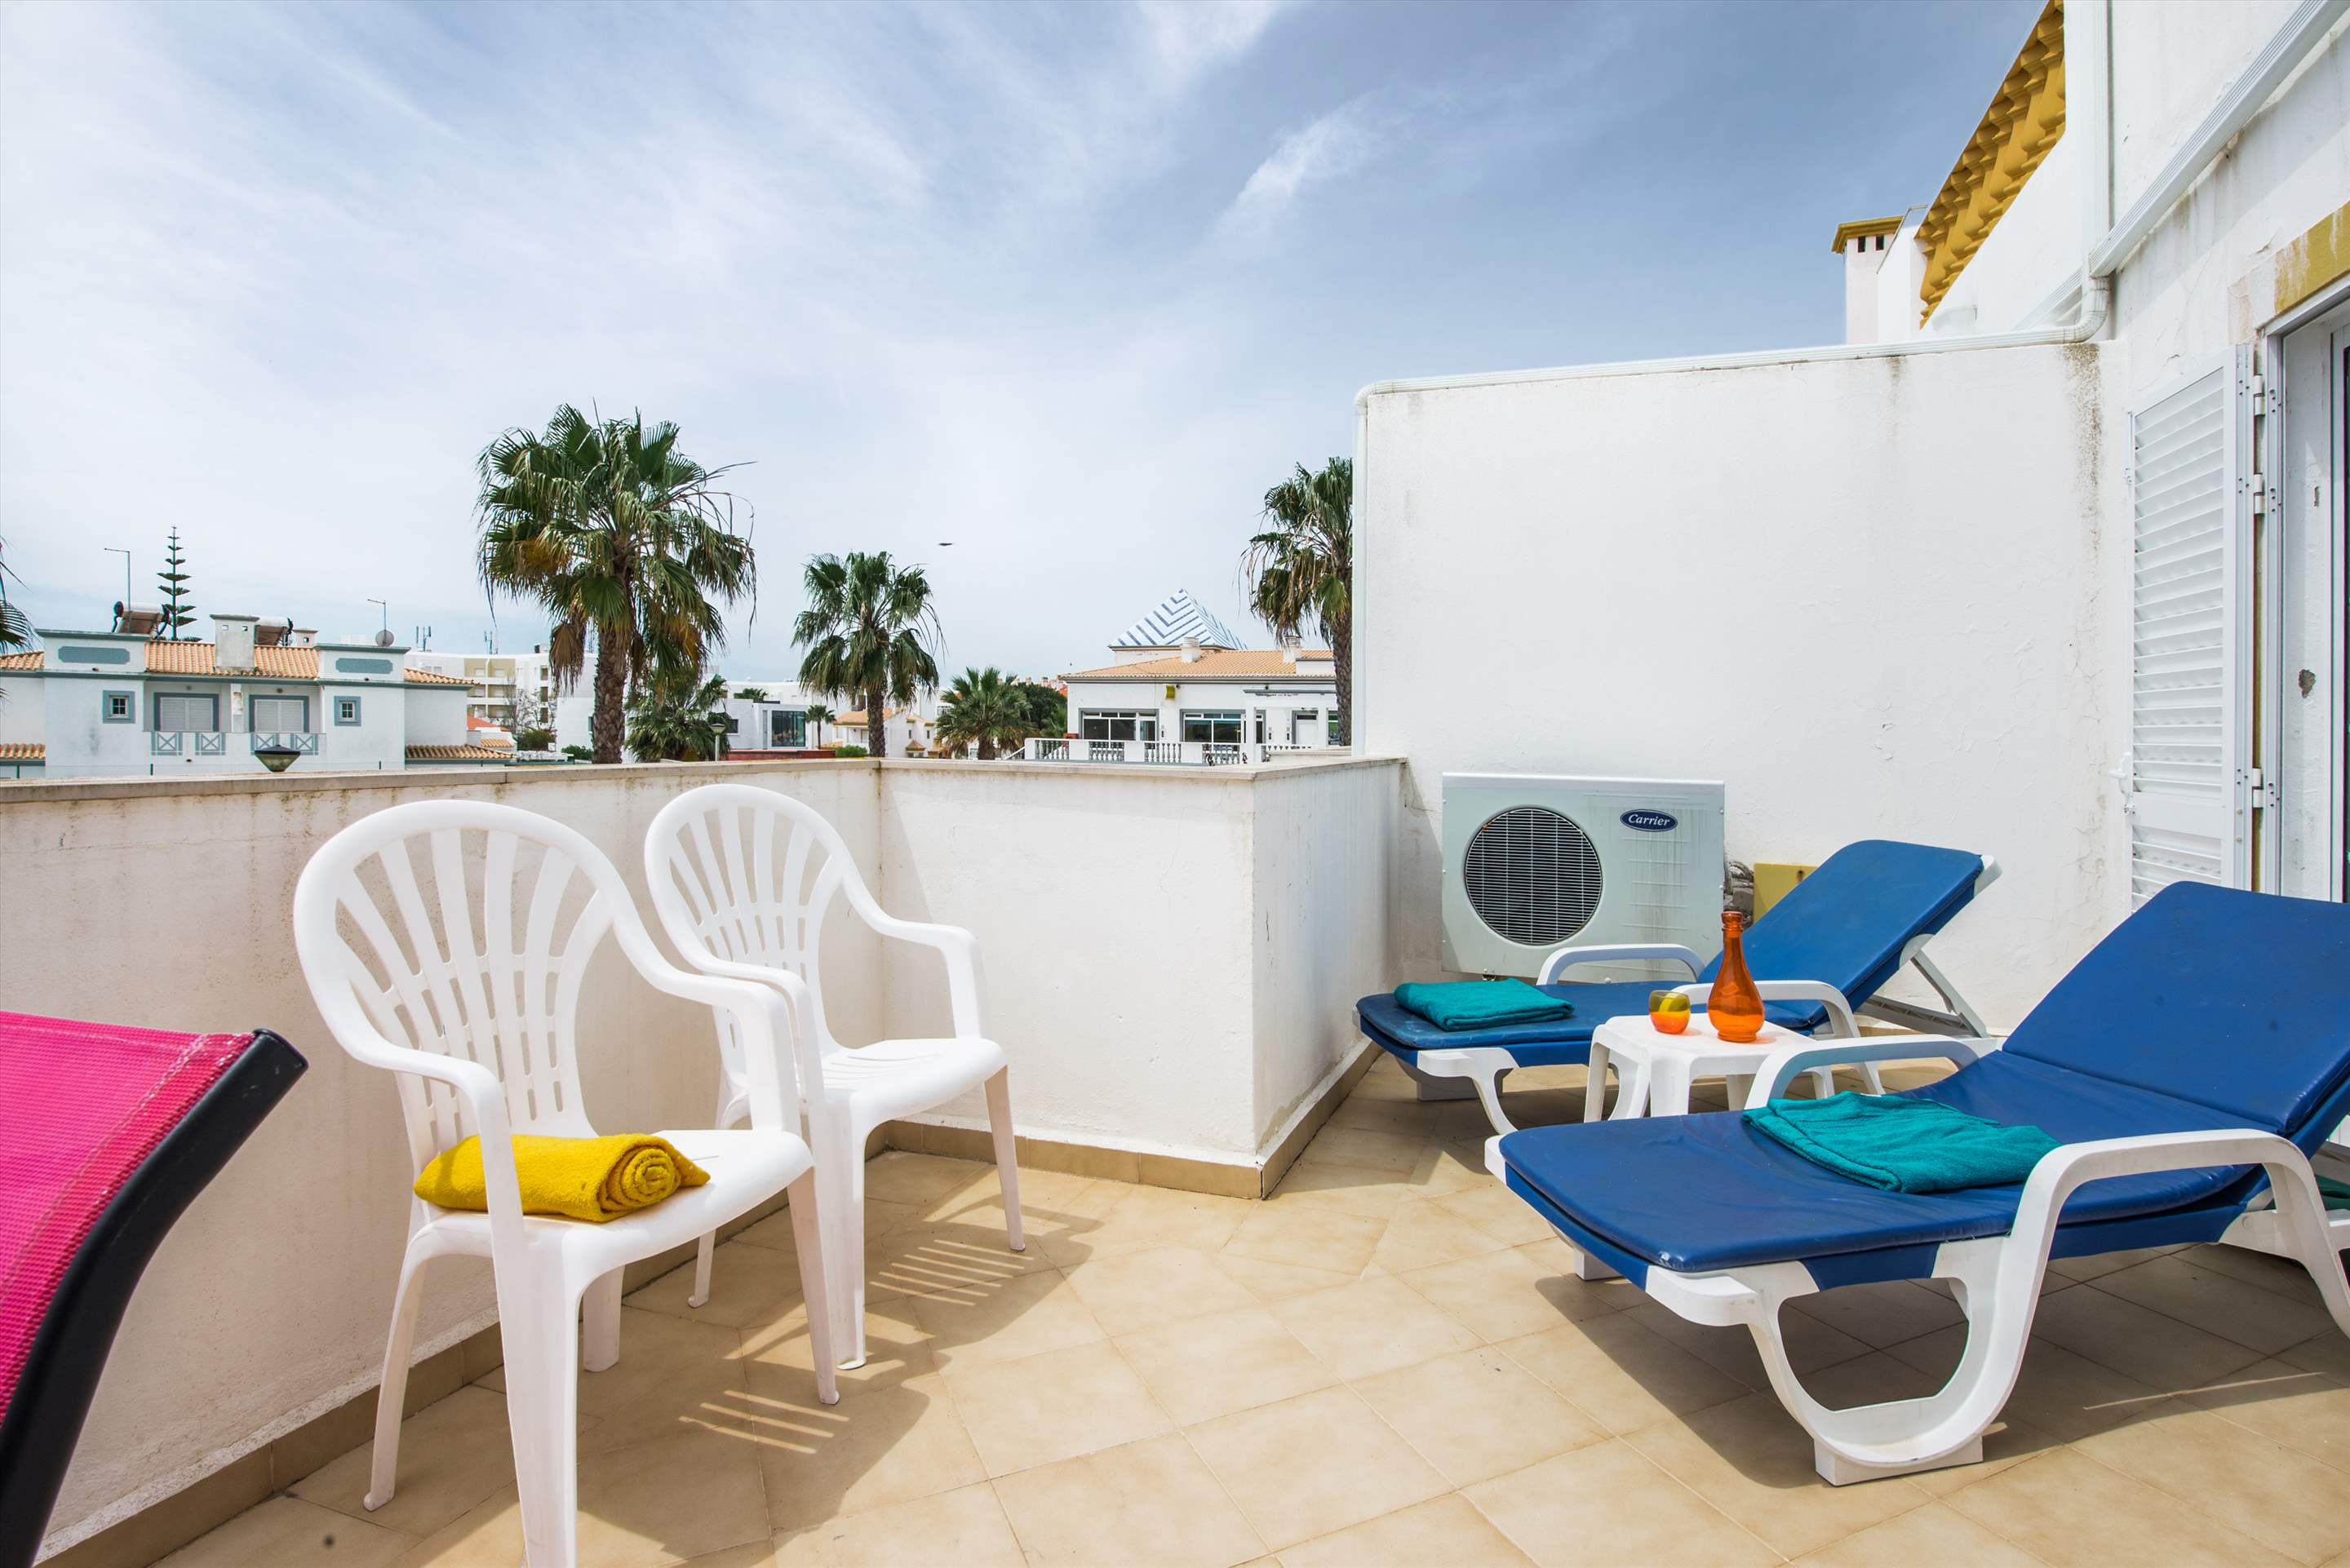 Apt O Monte, For Up to 4 Persons, 2 bedroom apartment in Gale, Vale da Parra and Guia, Algarve Photo #12